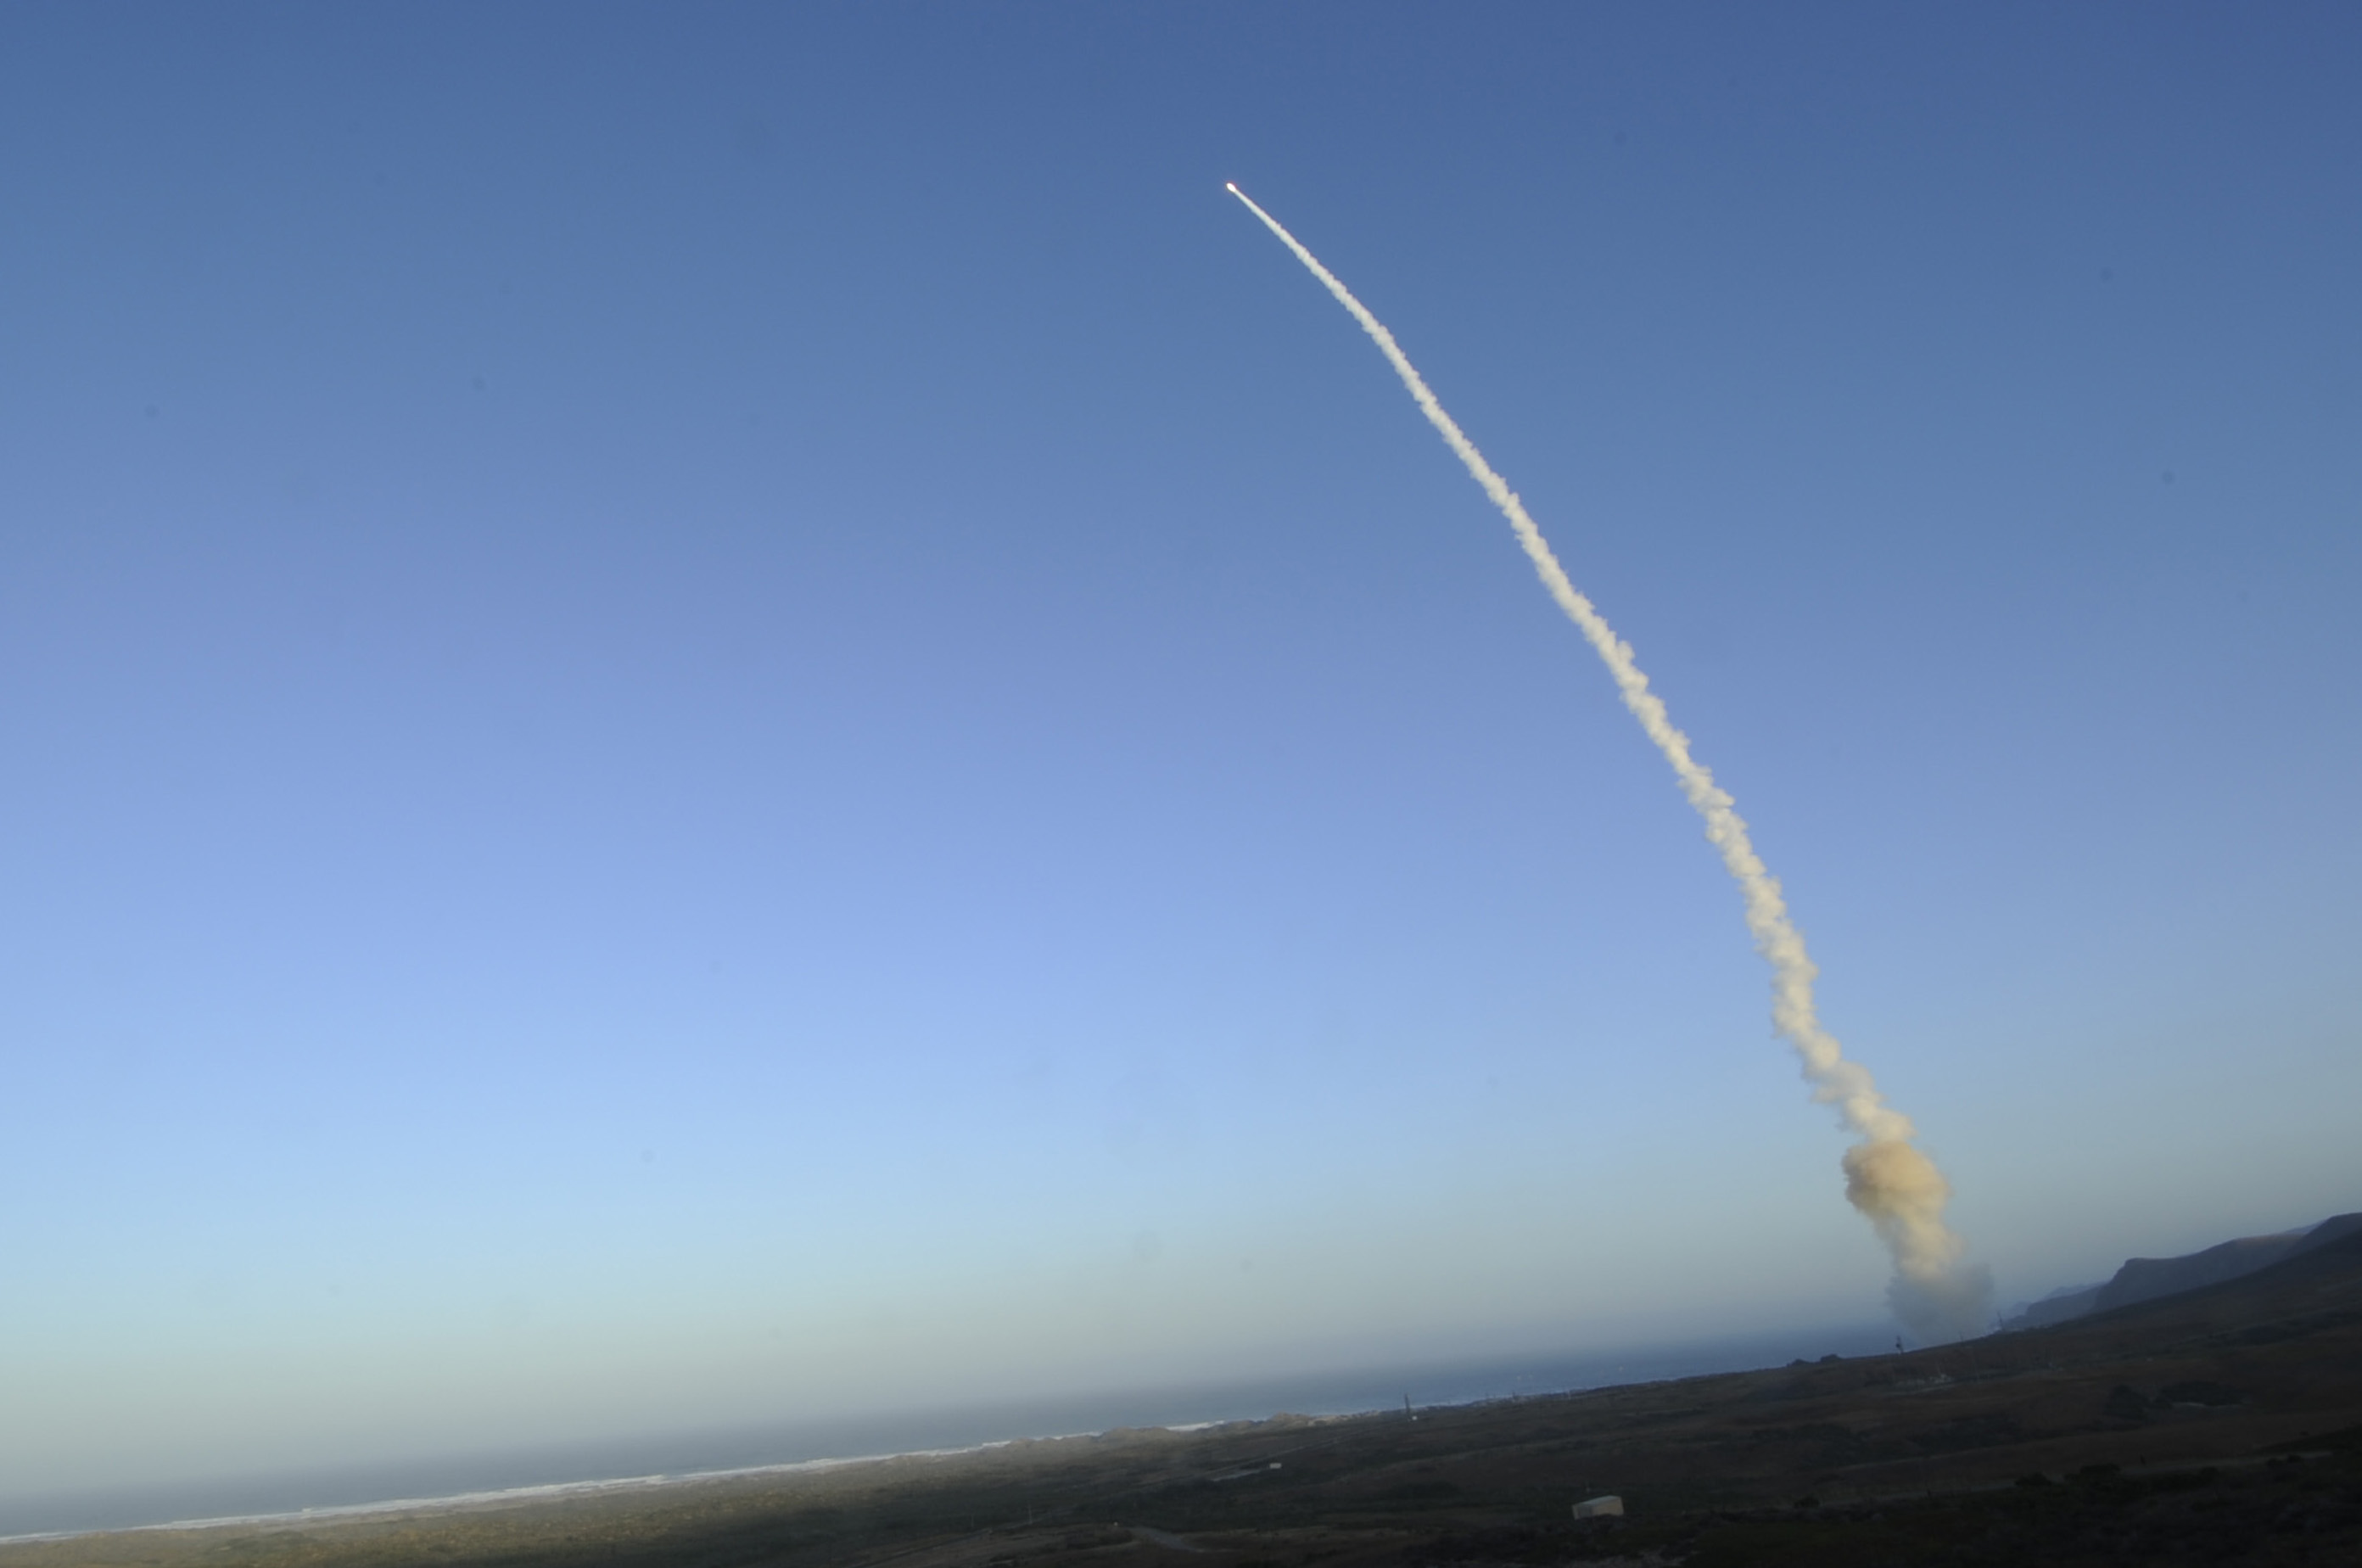 STRATCOM CO: Next Air Force ICBM, Navy Sub Launched